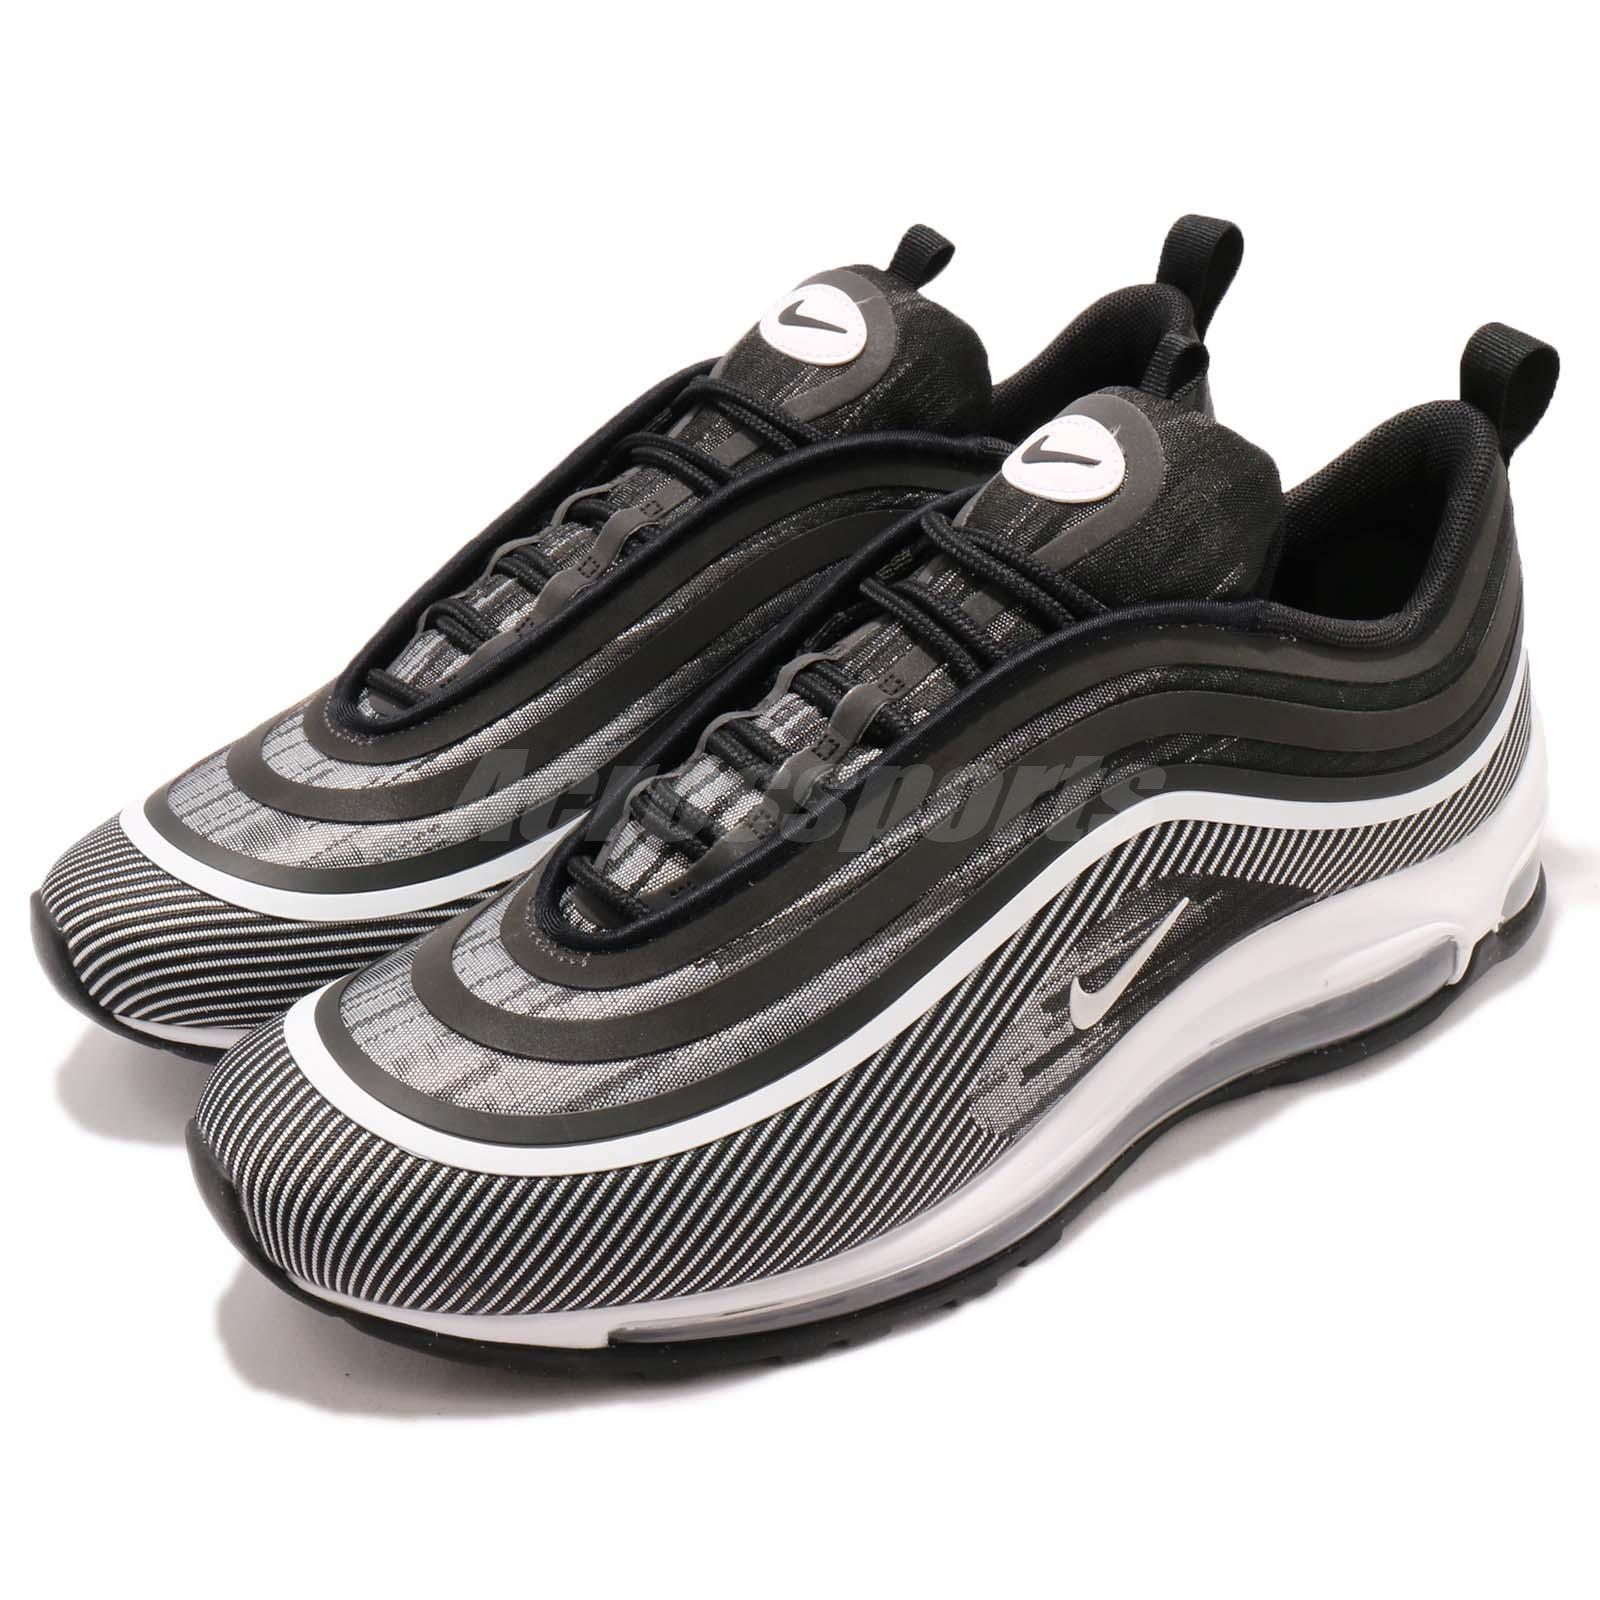 Details about Nike Air Max 97 UL 17 Ultra Black White Men Running Shoes  Sneakers 918356-006 9f224b61f